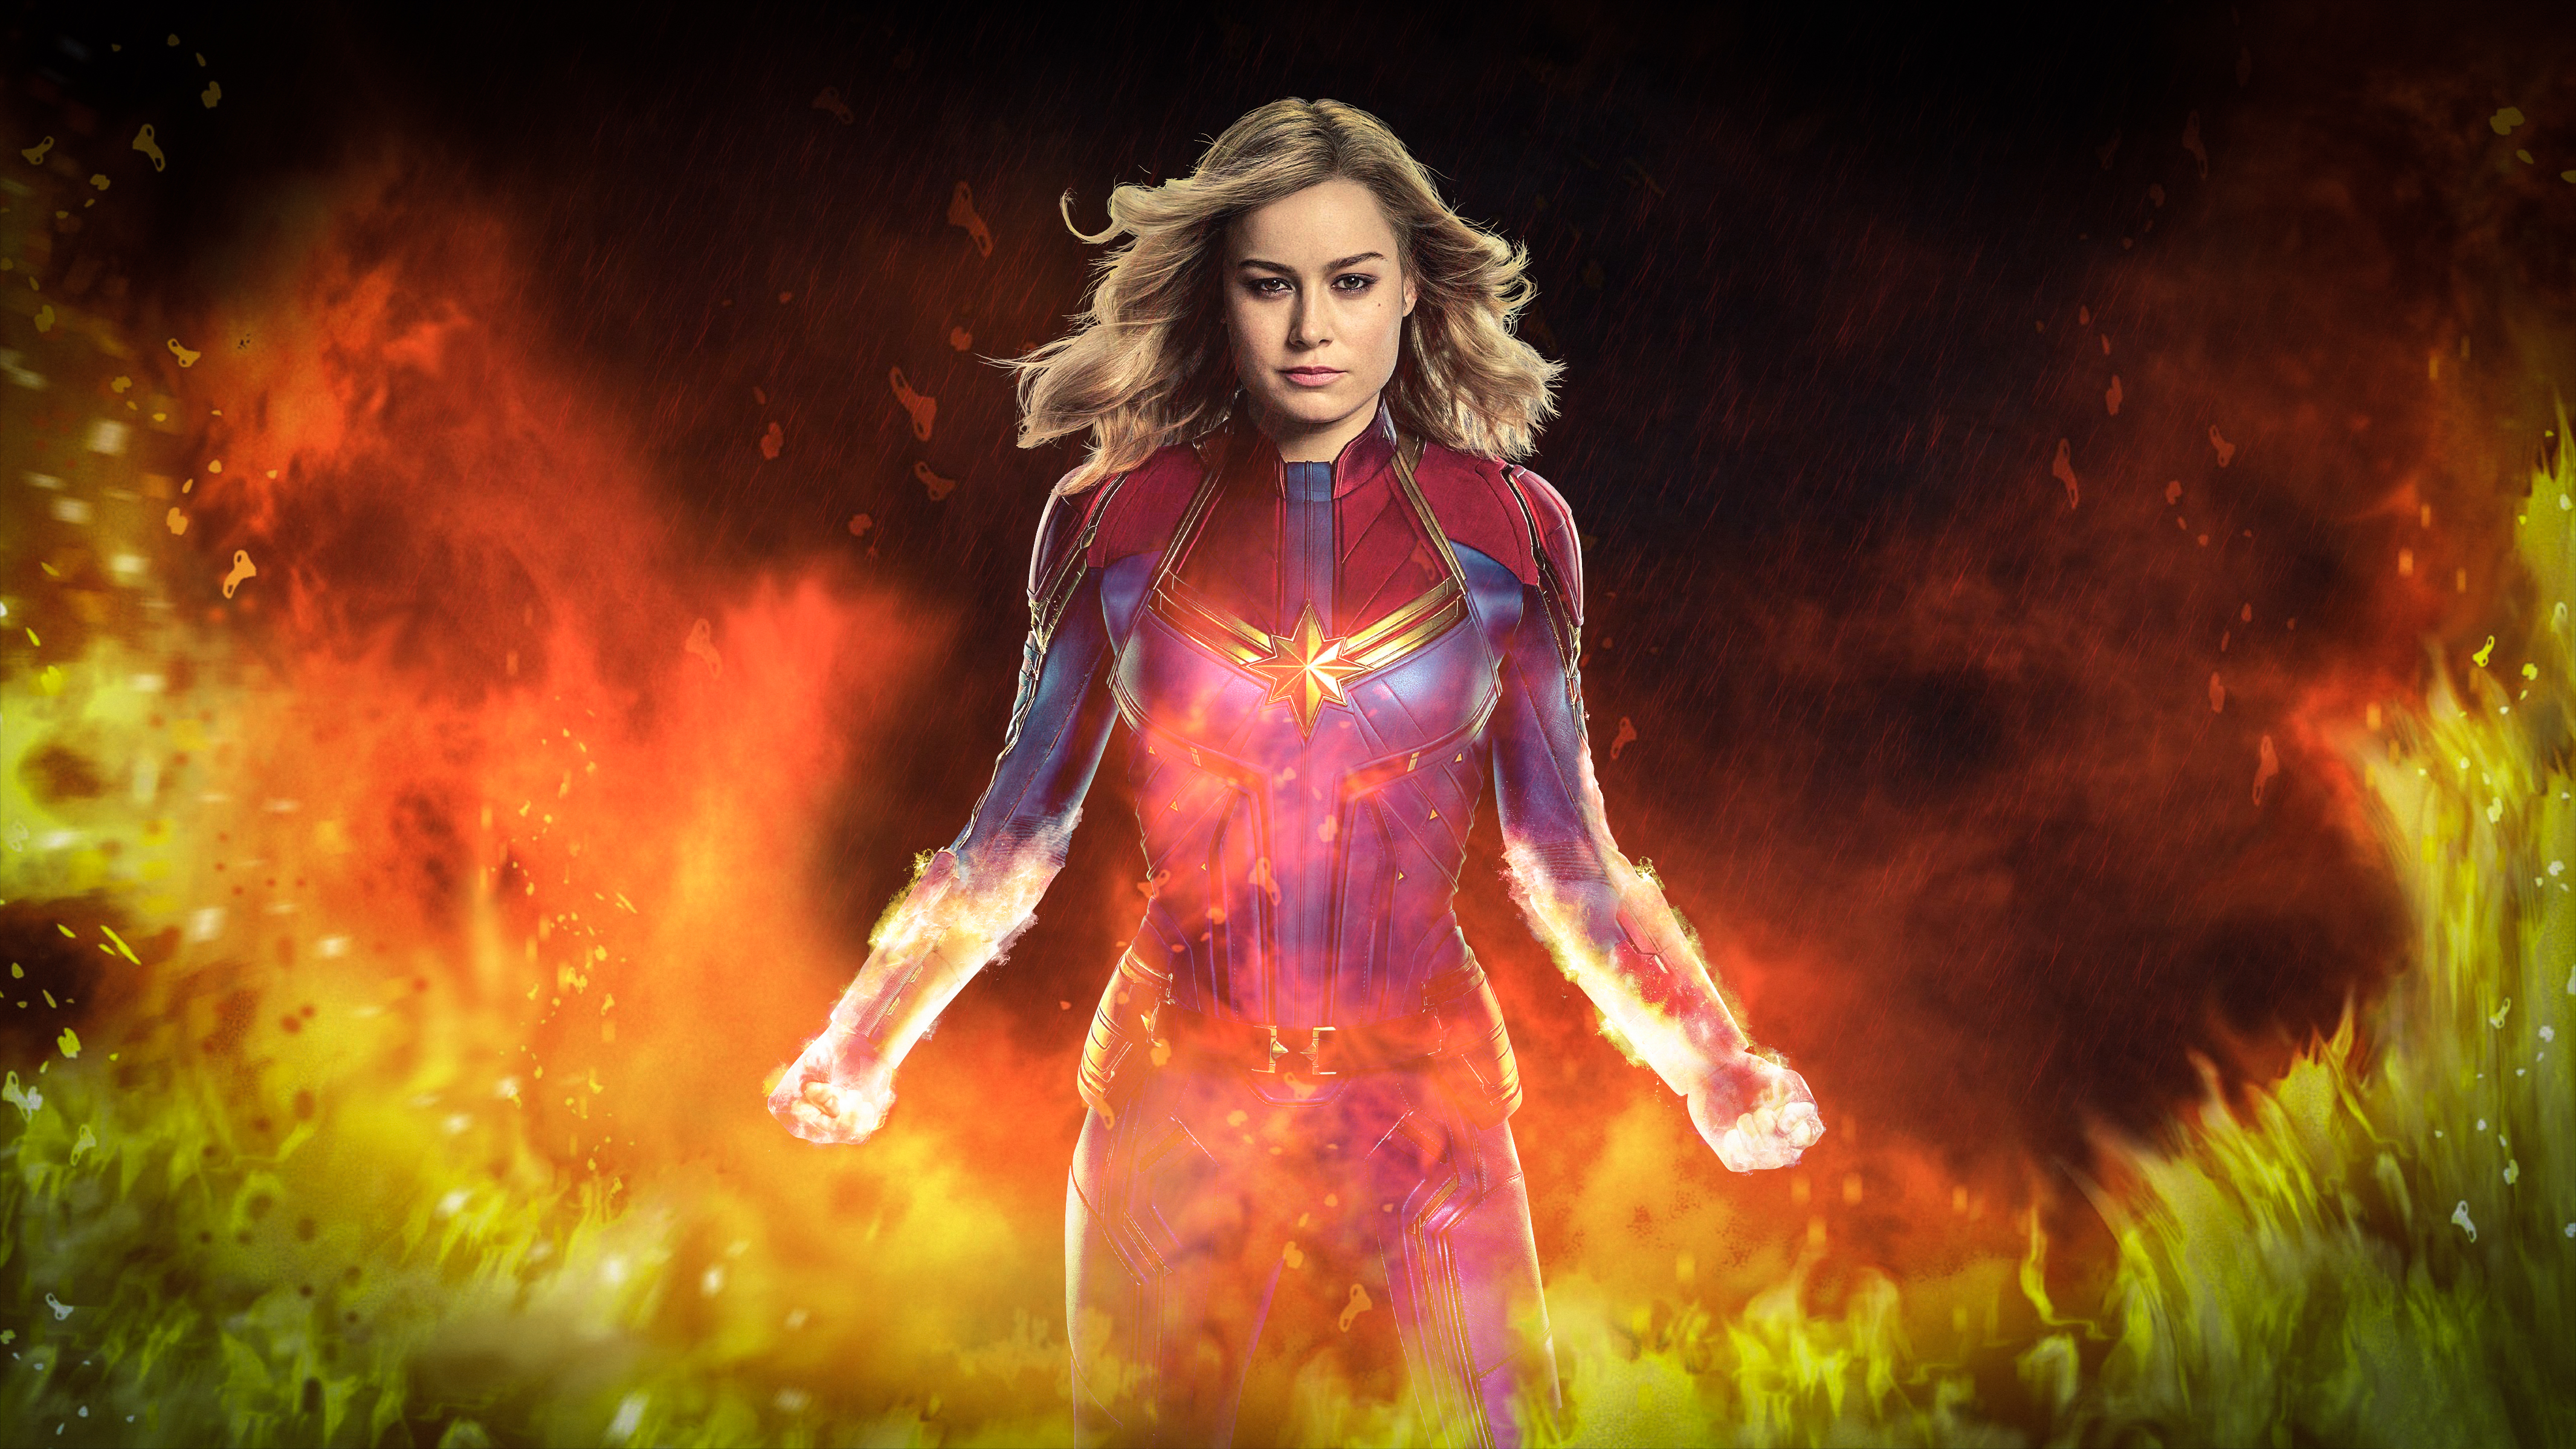 captain marvel movie 2019 4k art, hd movies, 4k wallpapers, images